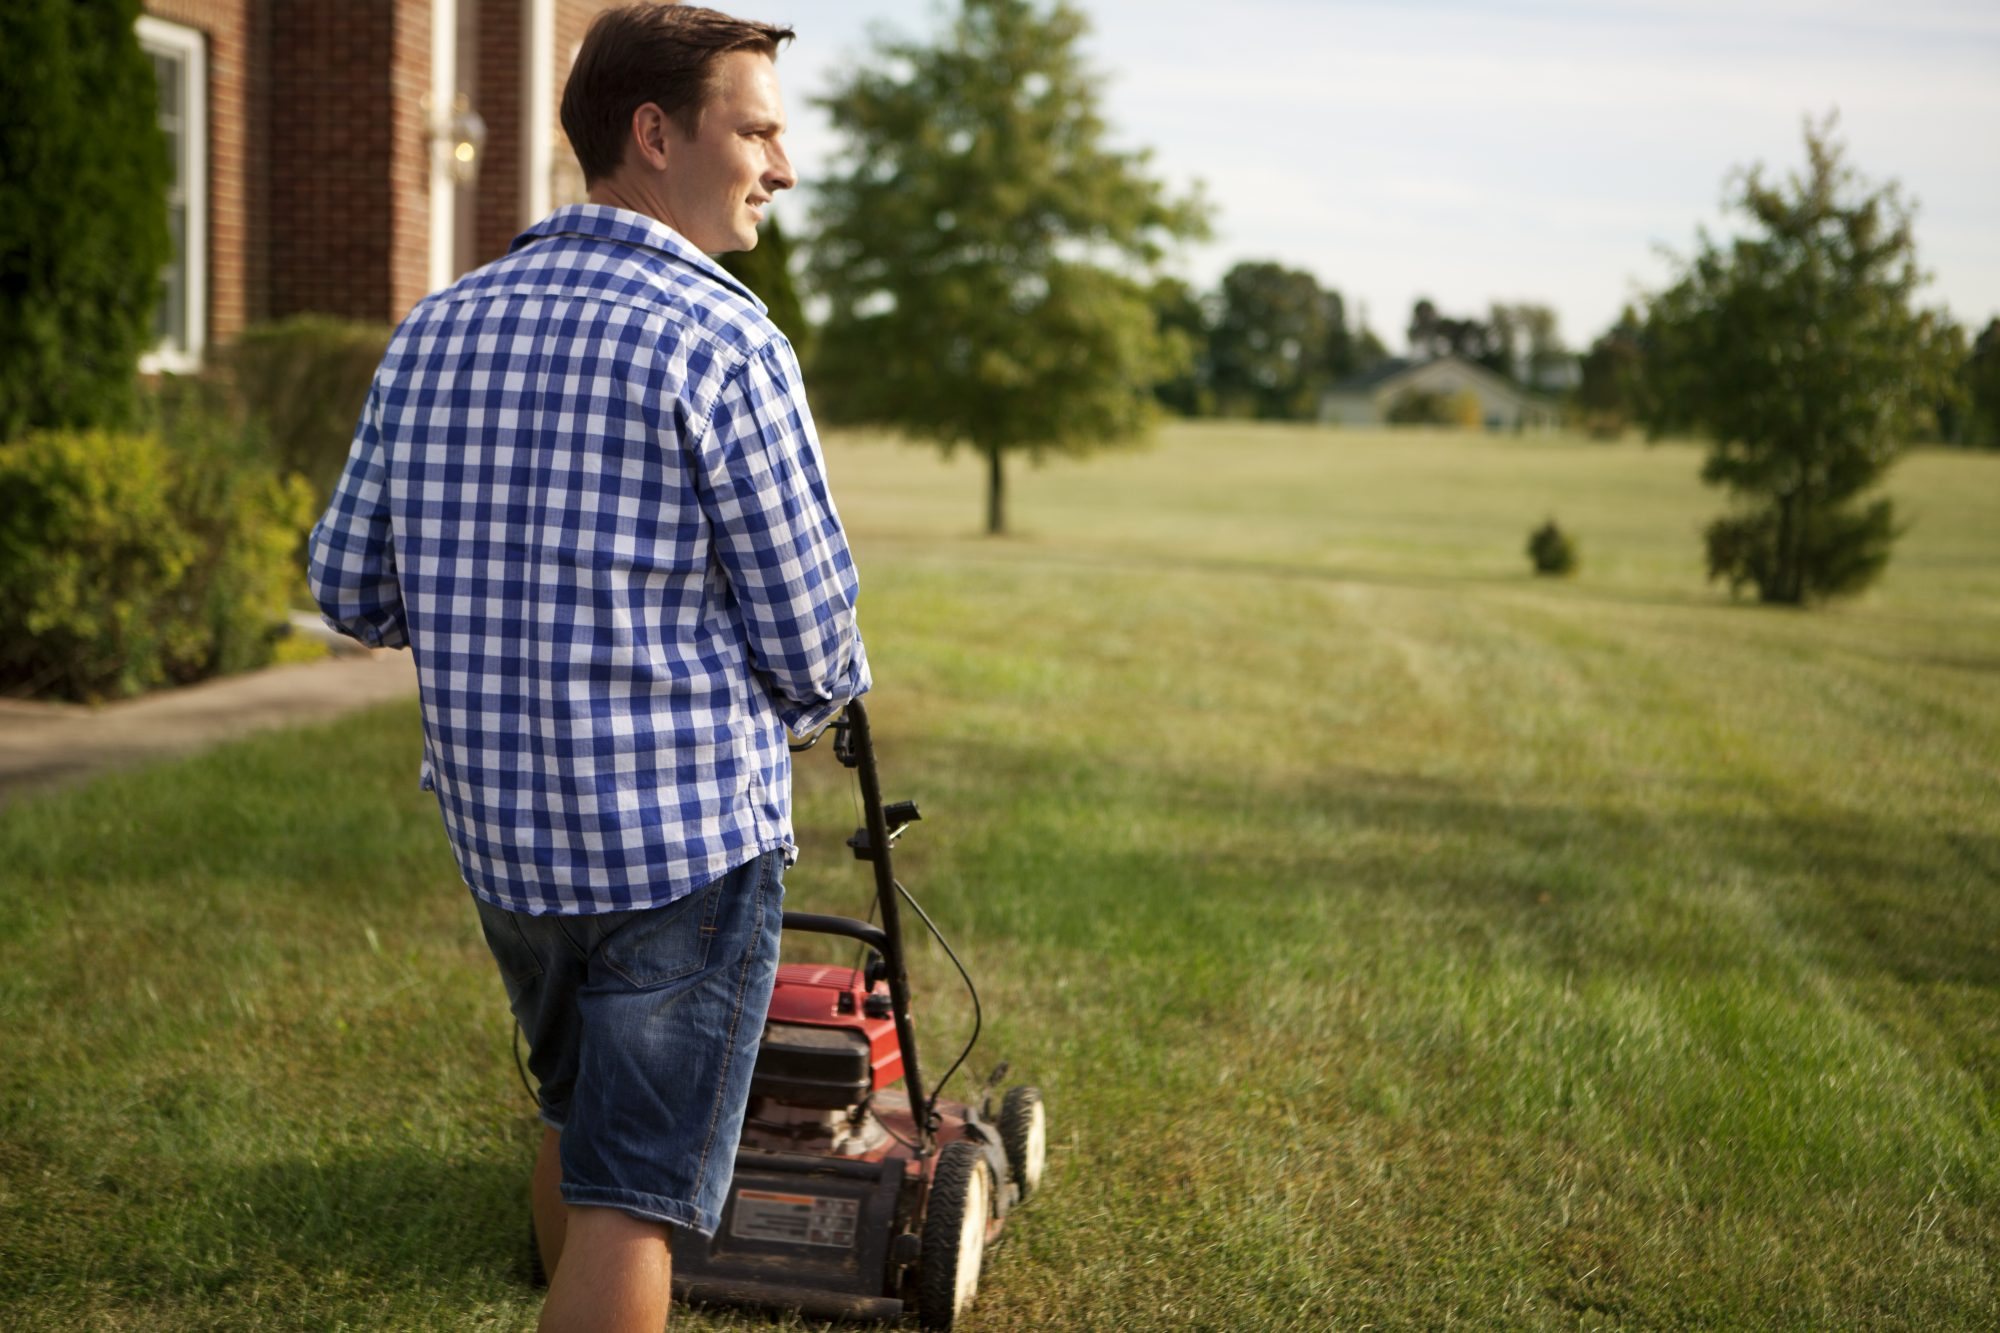 Young man mowing the lawn on a sunny summer day.